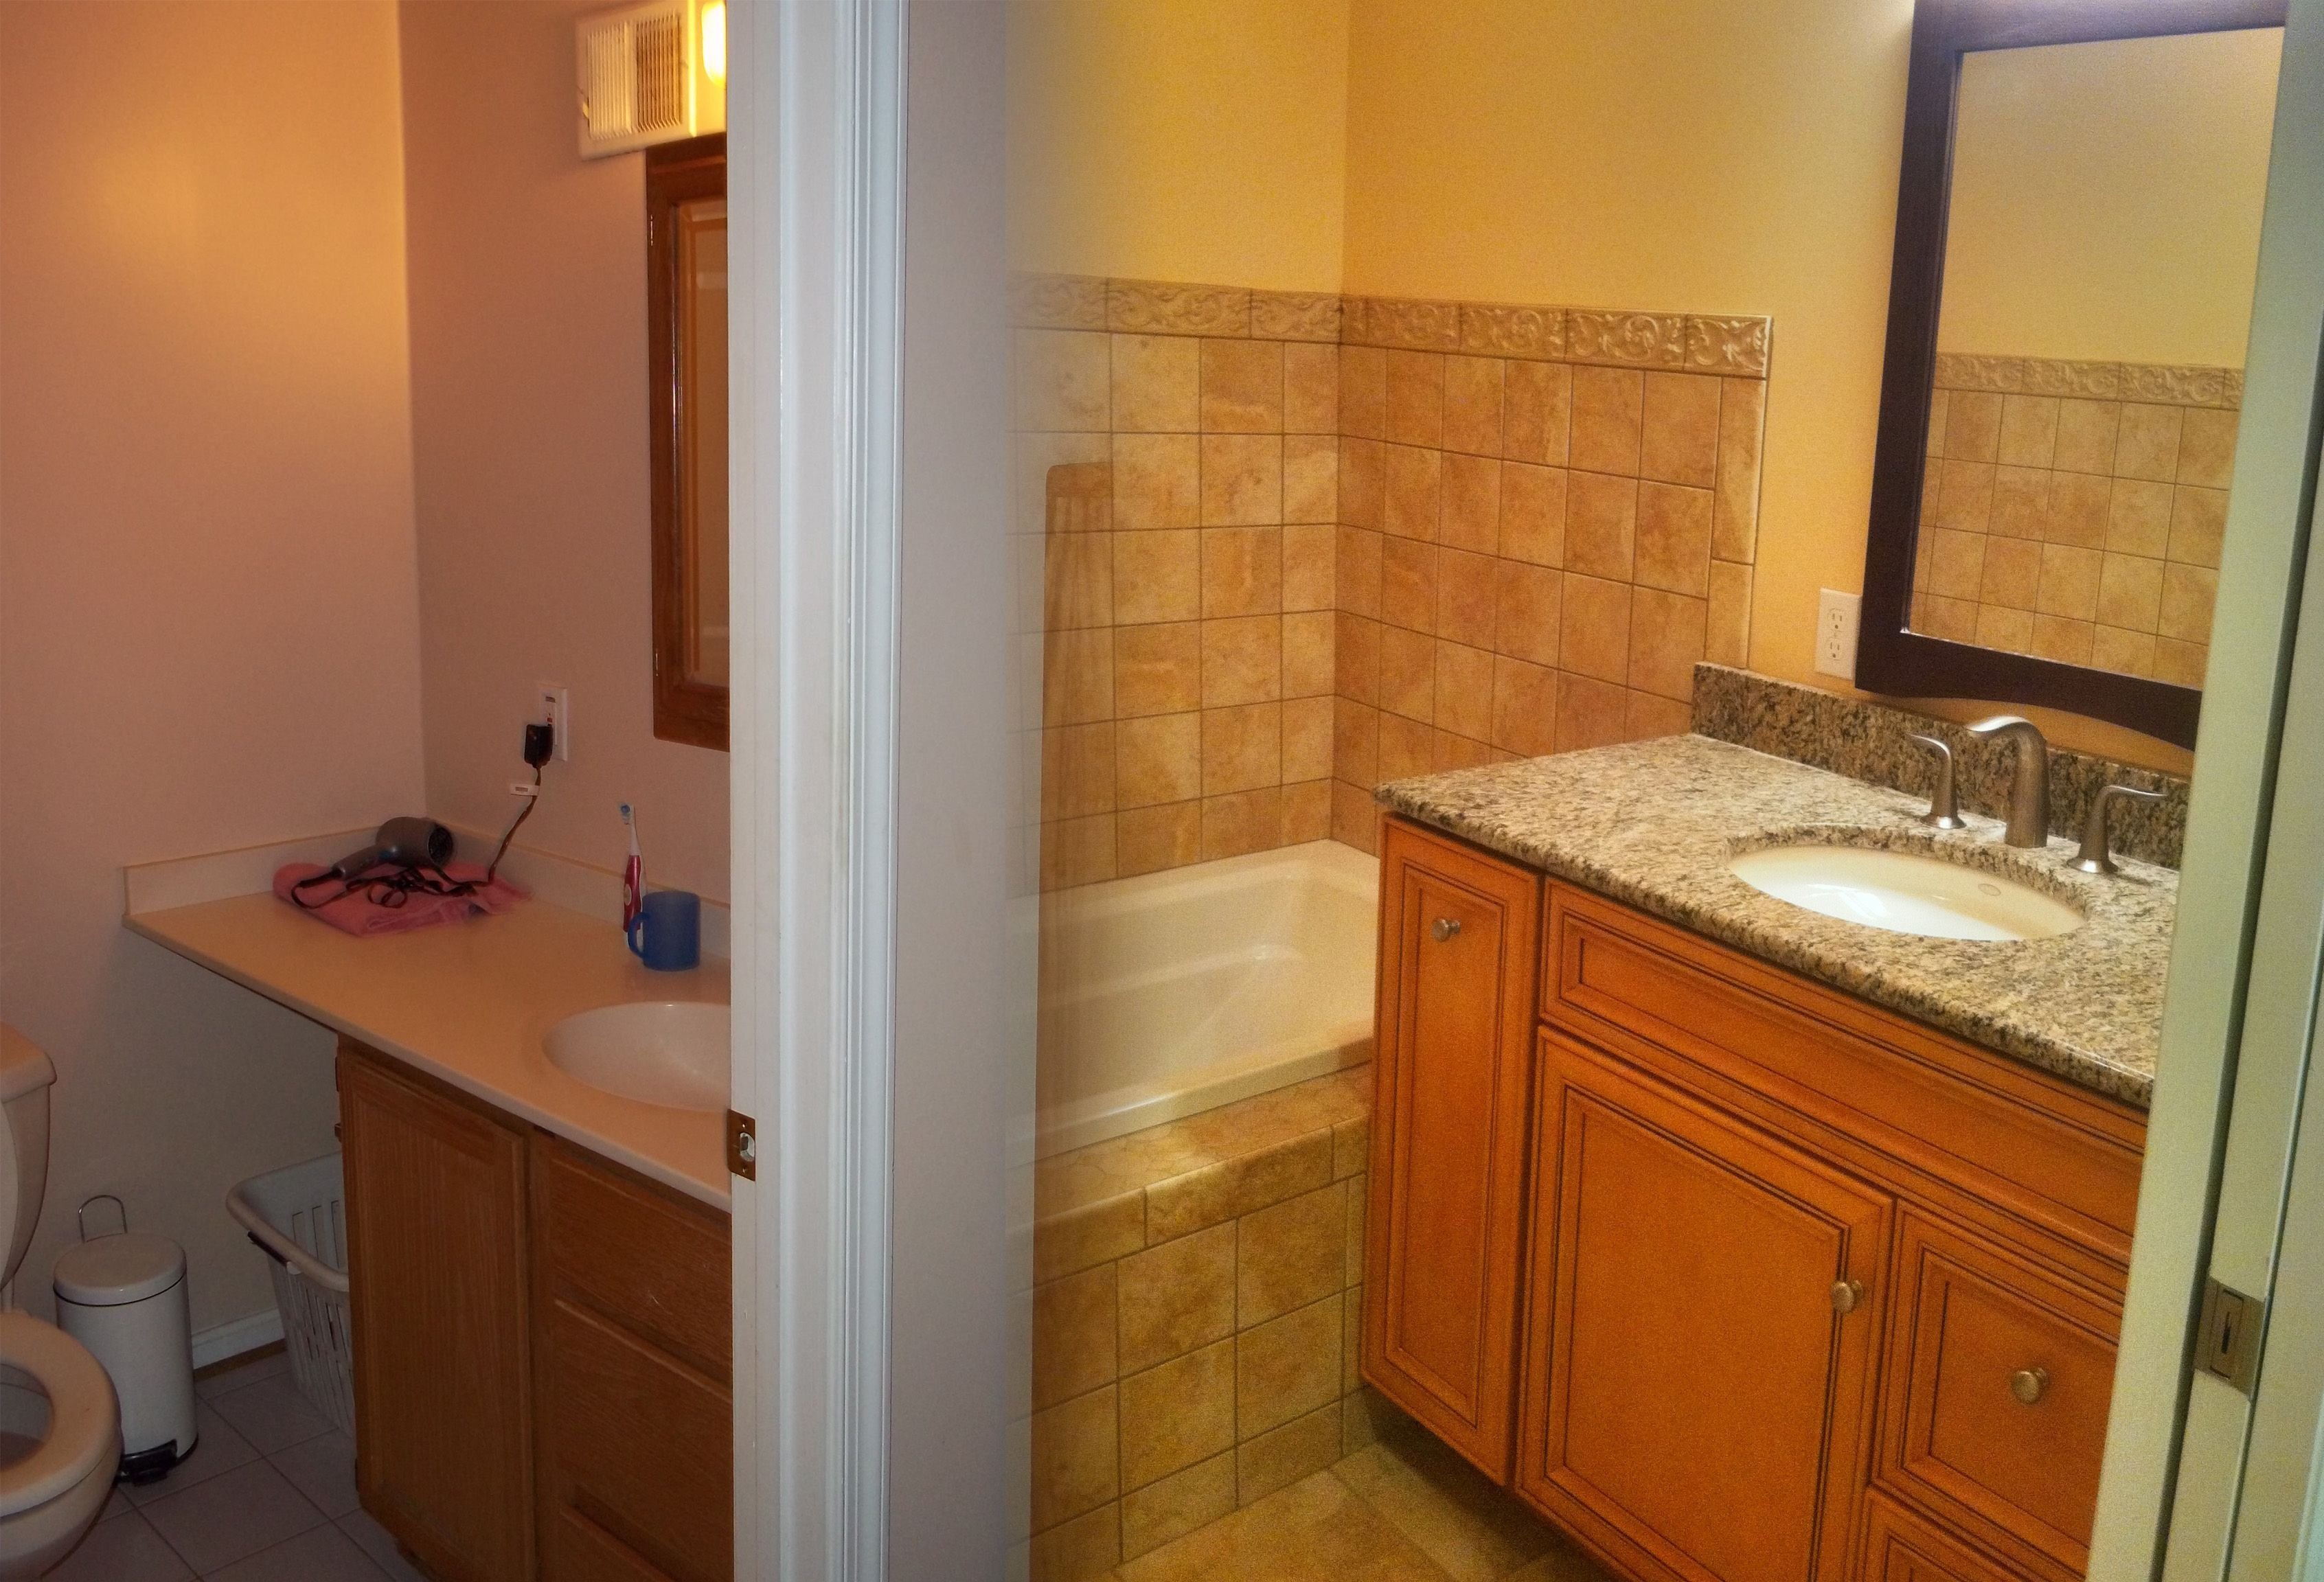 1960s bathroom renovation before and after for Bathroom improvements